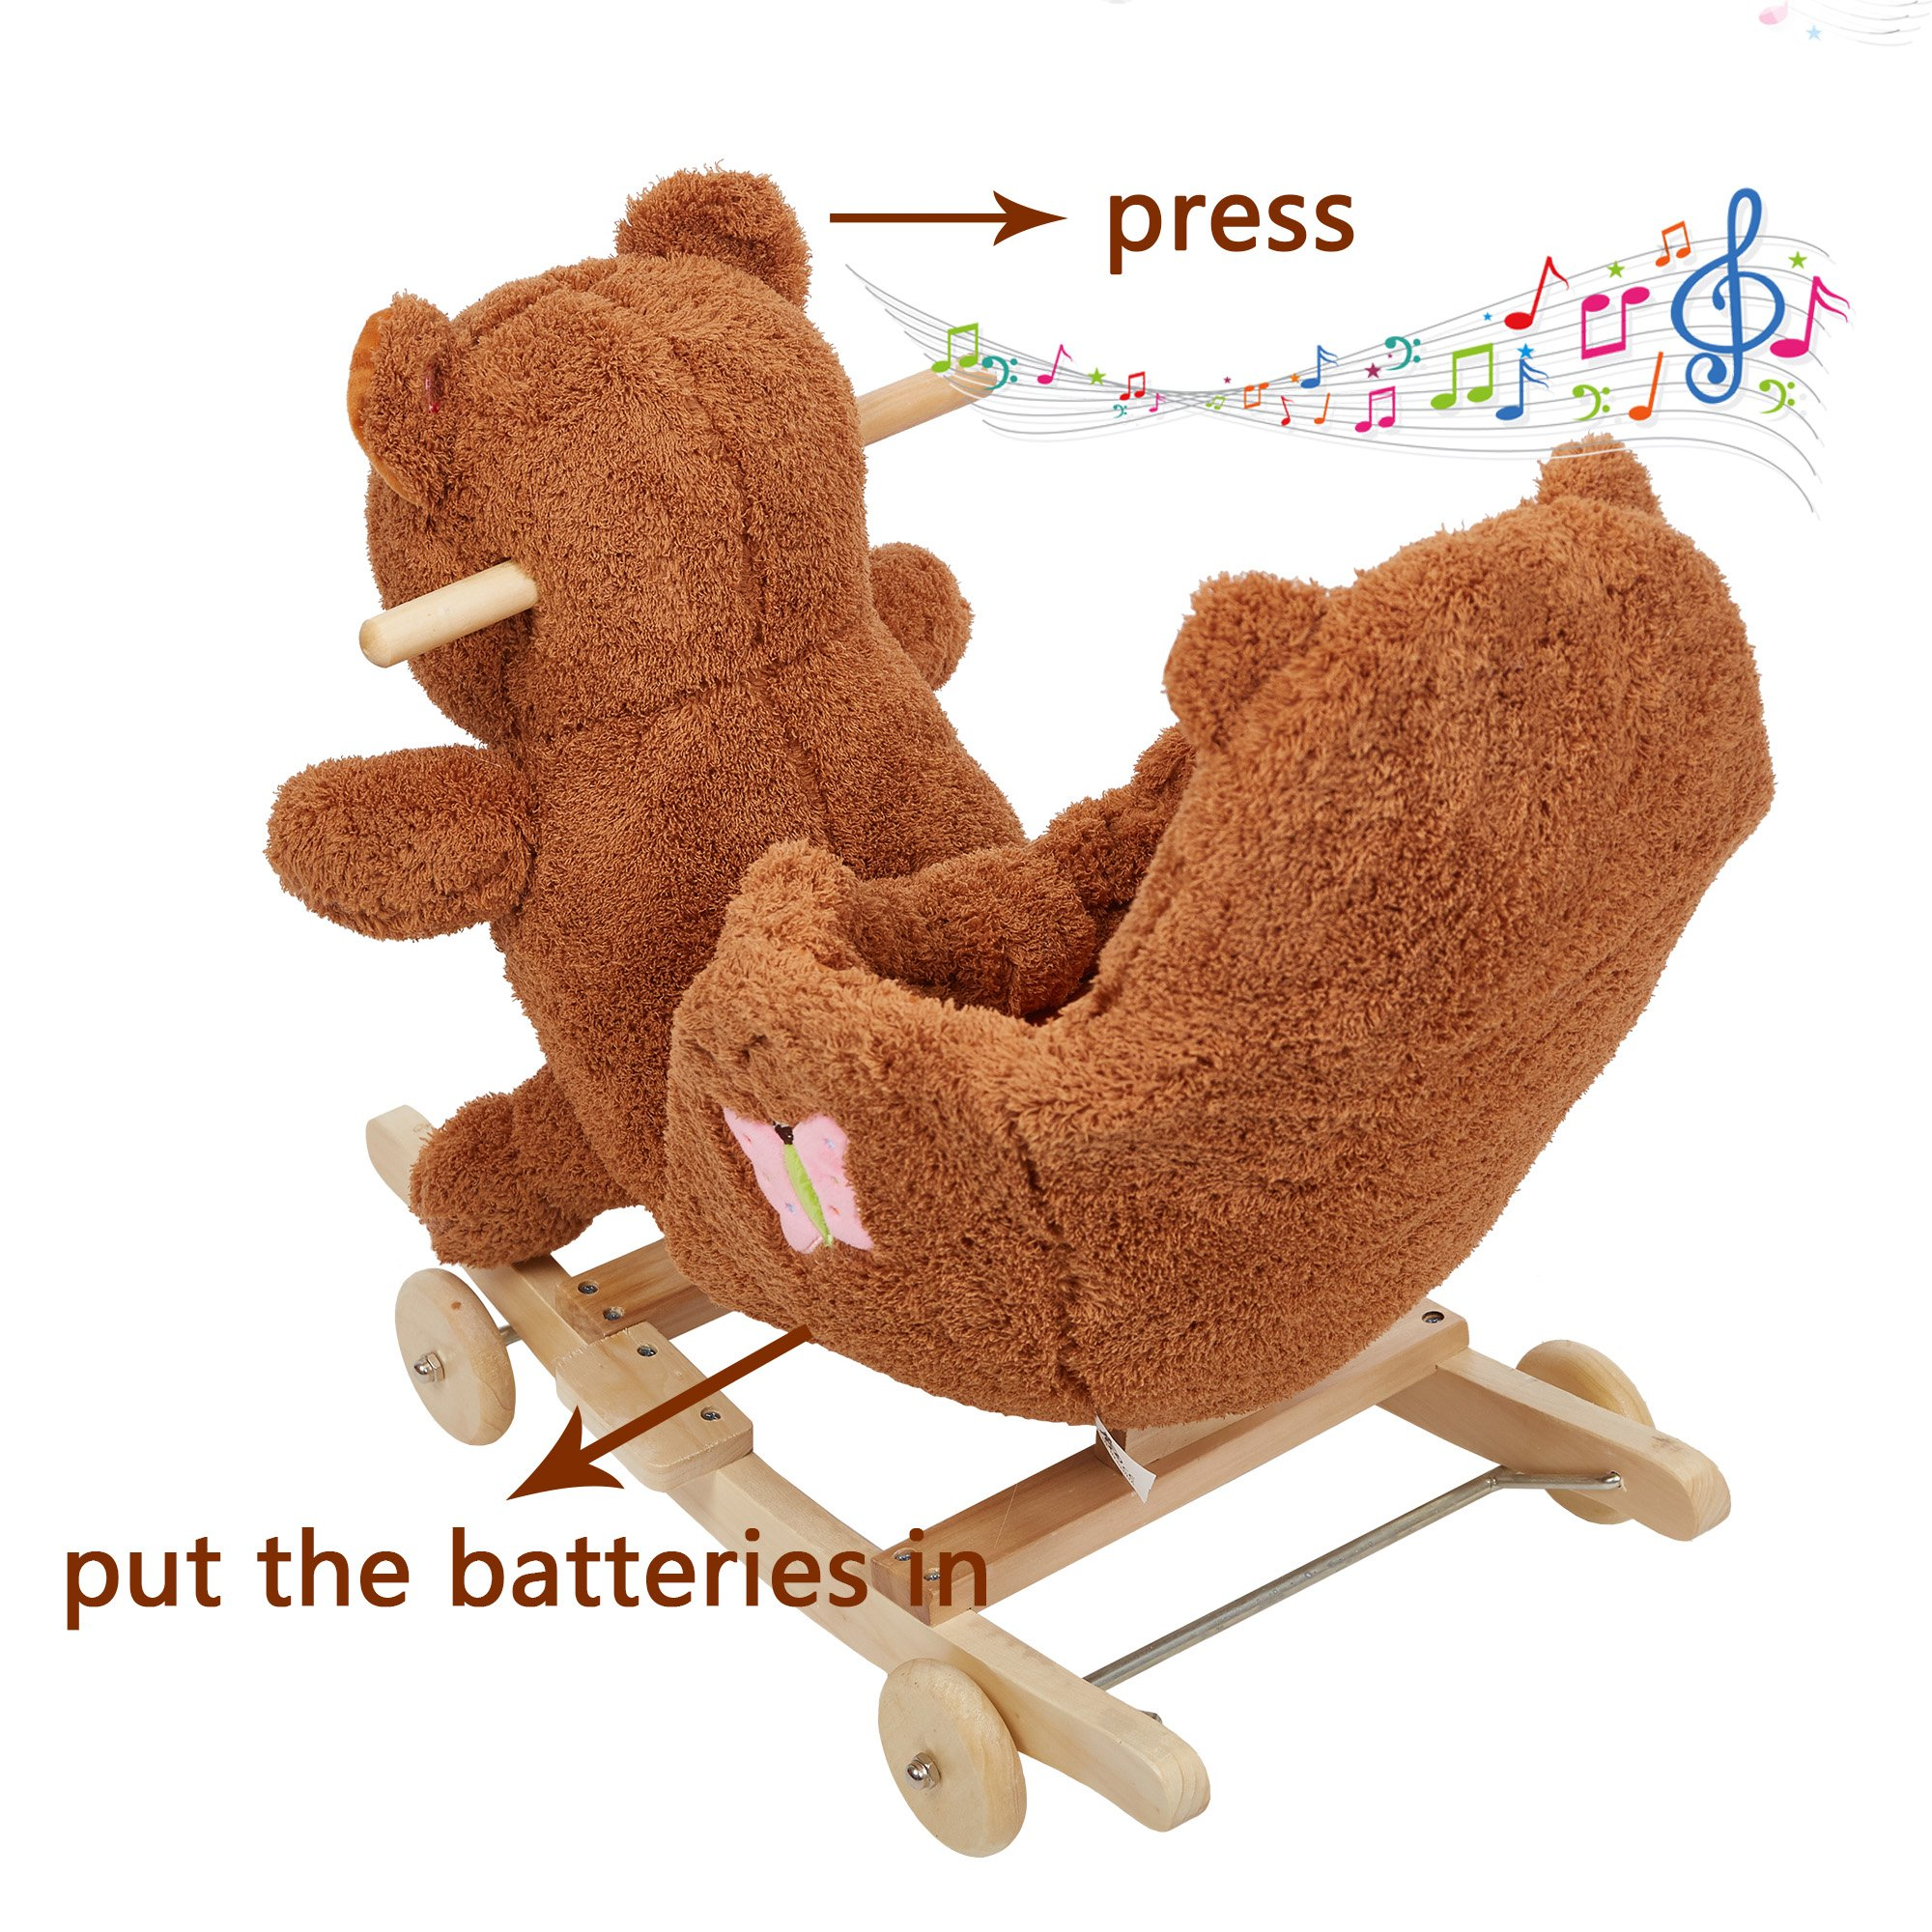 Lucky Tree Rocking Horse Wooden Riding Toys Plush Brown Bear Ride on Toy with Wheels for kids 18 Months-4 Years,Bear by Lucky Tree (Image #5)